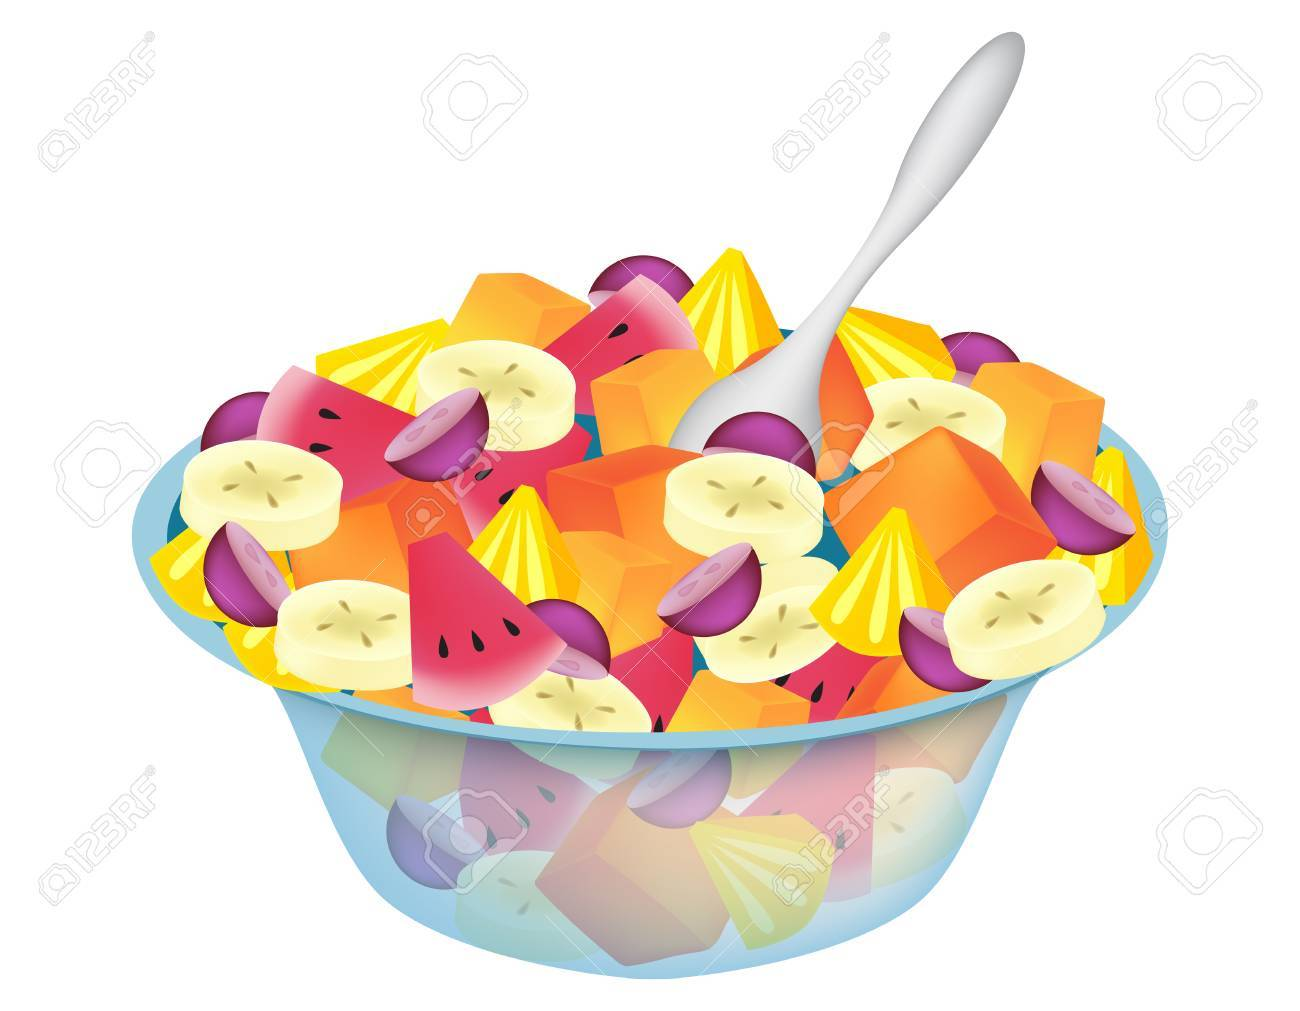 fruit salad bowl isolated on white royalty free cliparts vectors rh 123rf com Cartoon Fruit Salad Animated Fruit Salad